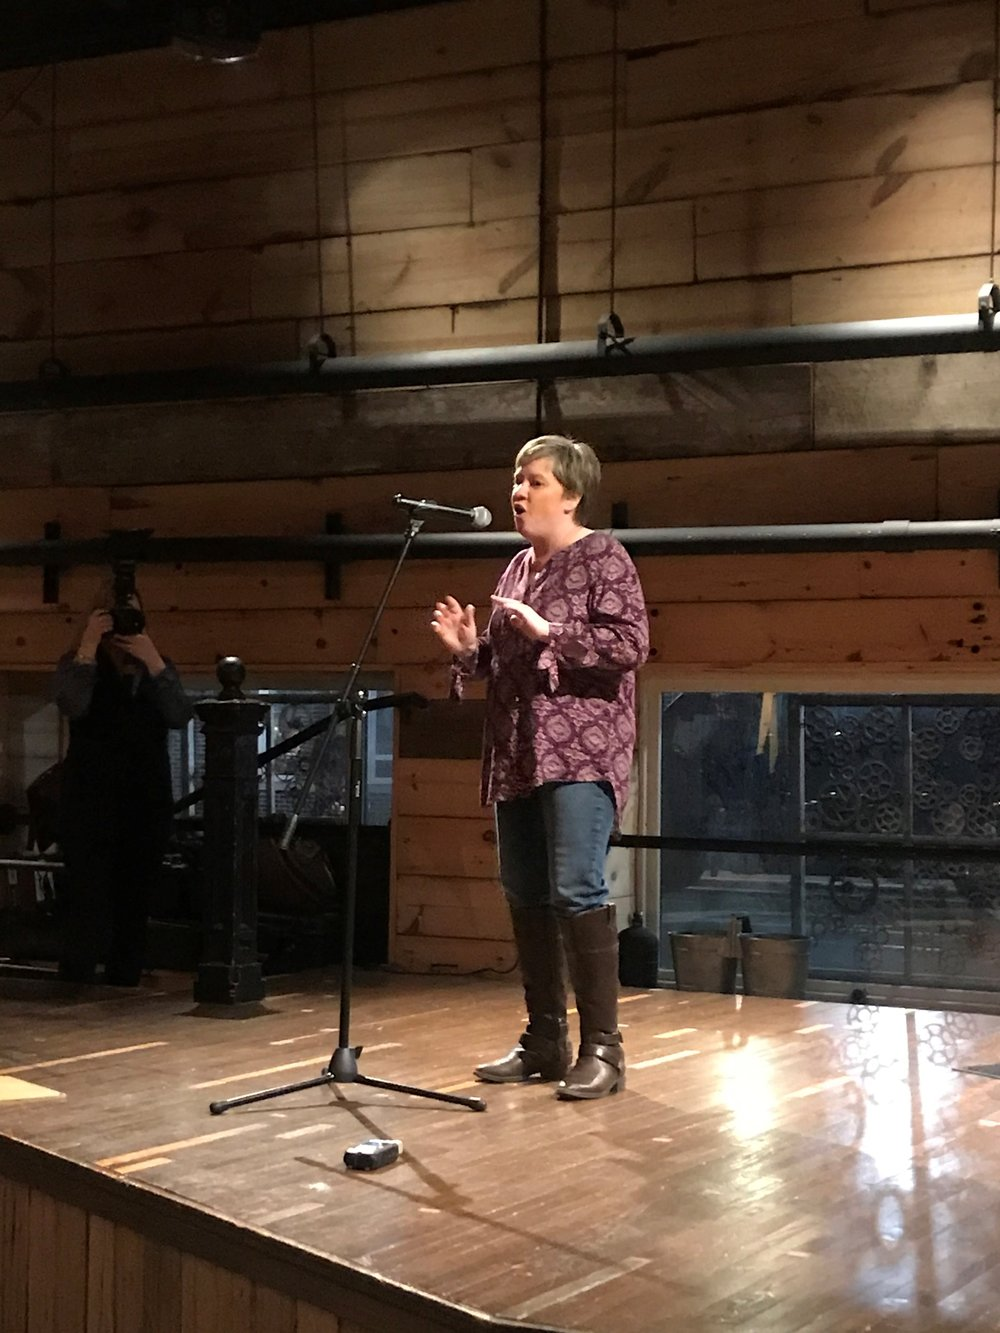 First time storyteller Robyn Whitlock took the stage at this month's People Tree Storytelling event to tell her story of coming face to face with the devil